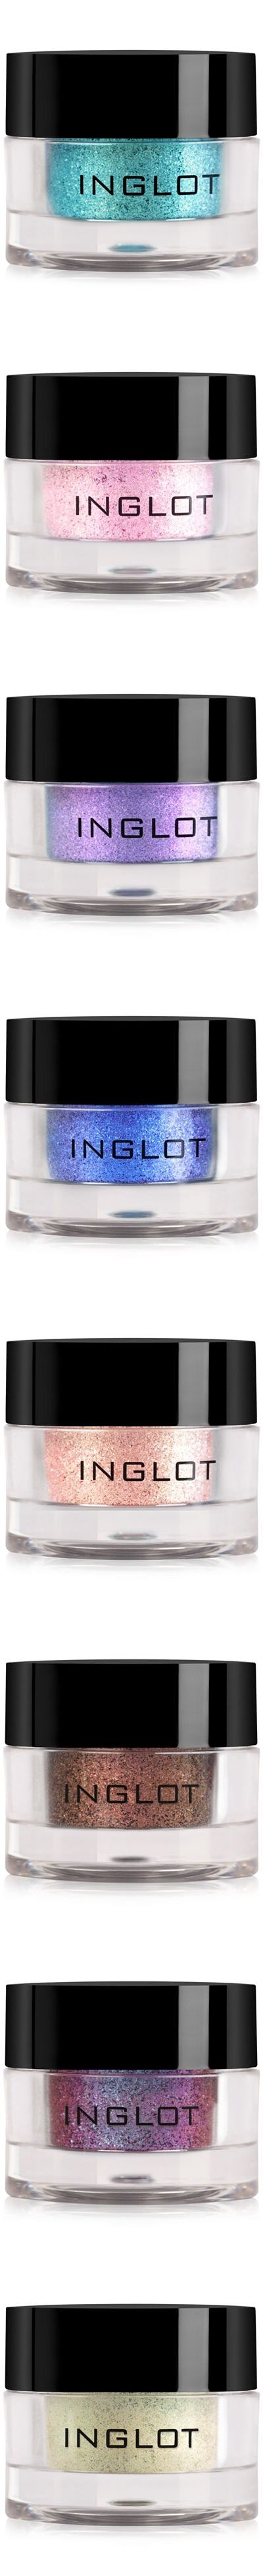 INGLOT AMC Pure Pigment Eye Shadow  ~ This is just a sampling of the many stunning shades available of  these highly concentrated loose colored powder that ranges from subtle to ultra-intense effects depending on application. The product contains sponge gourd oil and almost 90% pure pigment. Can be mixed with DURALINE to create liquid forms of all pigment colors.